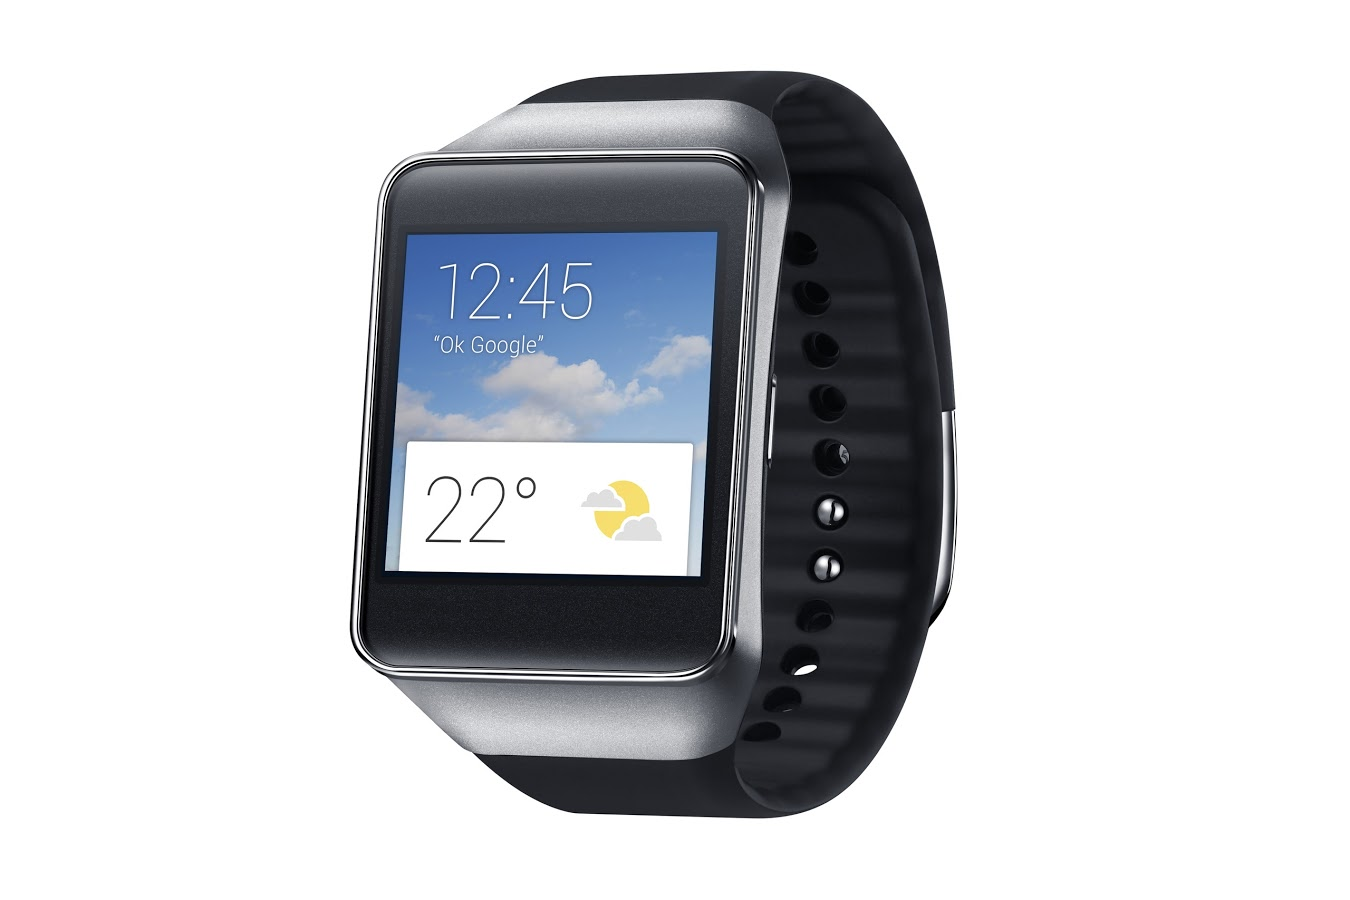 samsung-gear-live-android-wear-080814